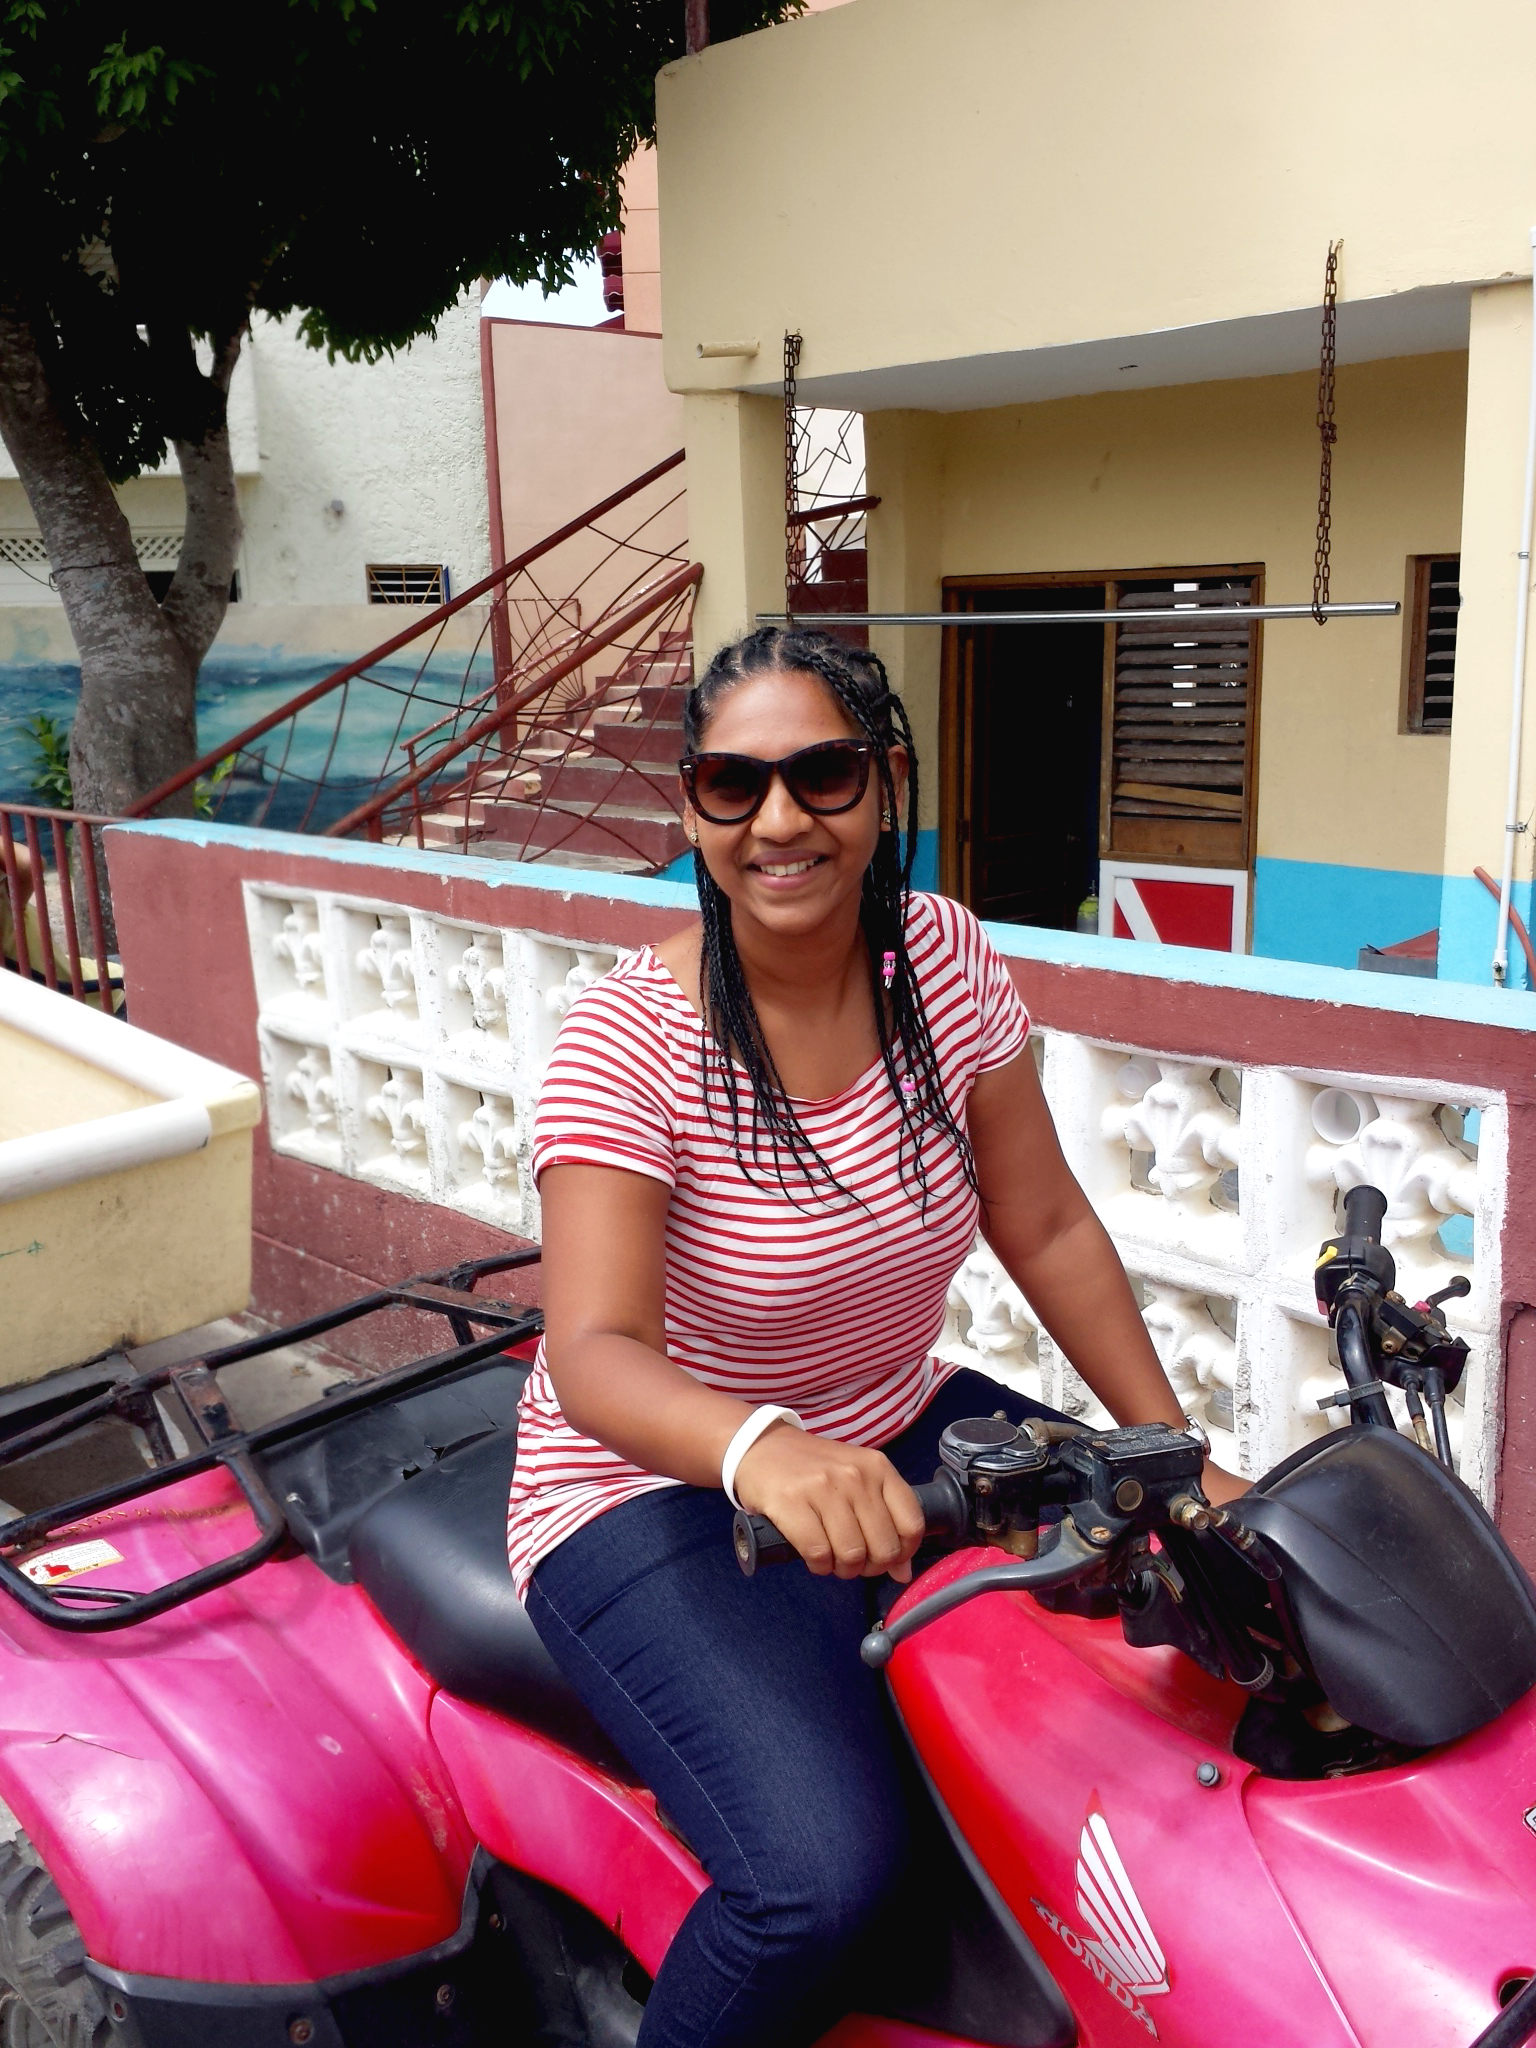 Republique_dominicaine_roadtrip_bayahibe_voyage_quad_hemaposesesvalises